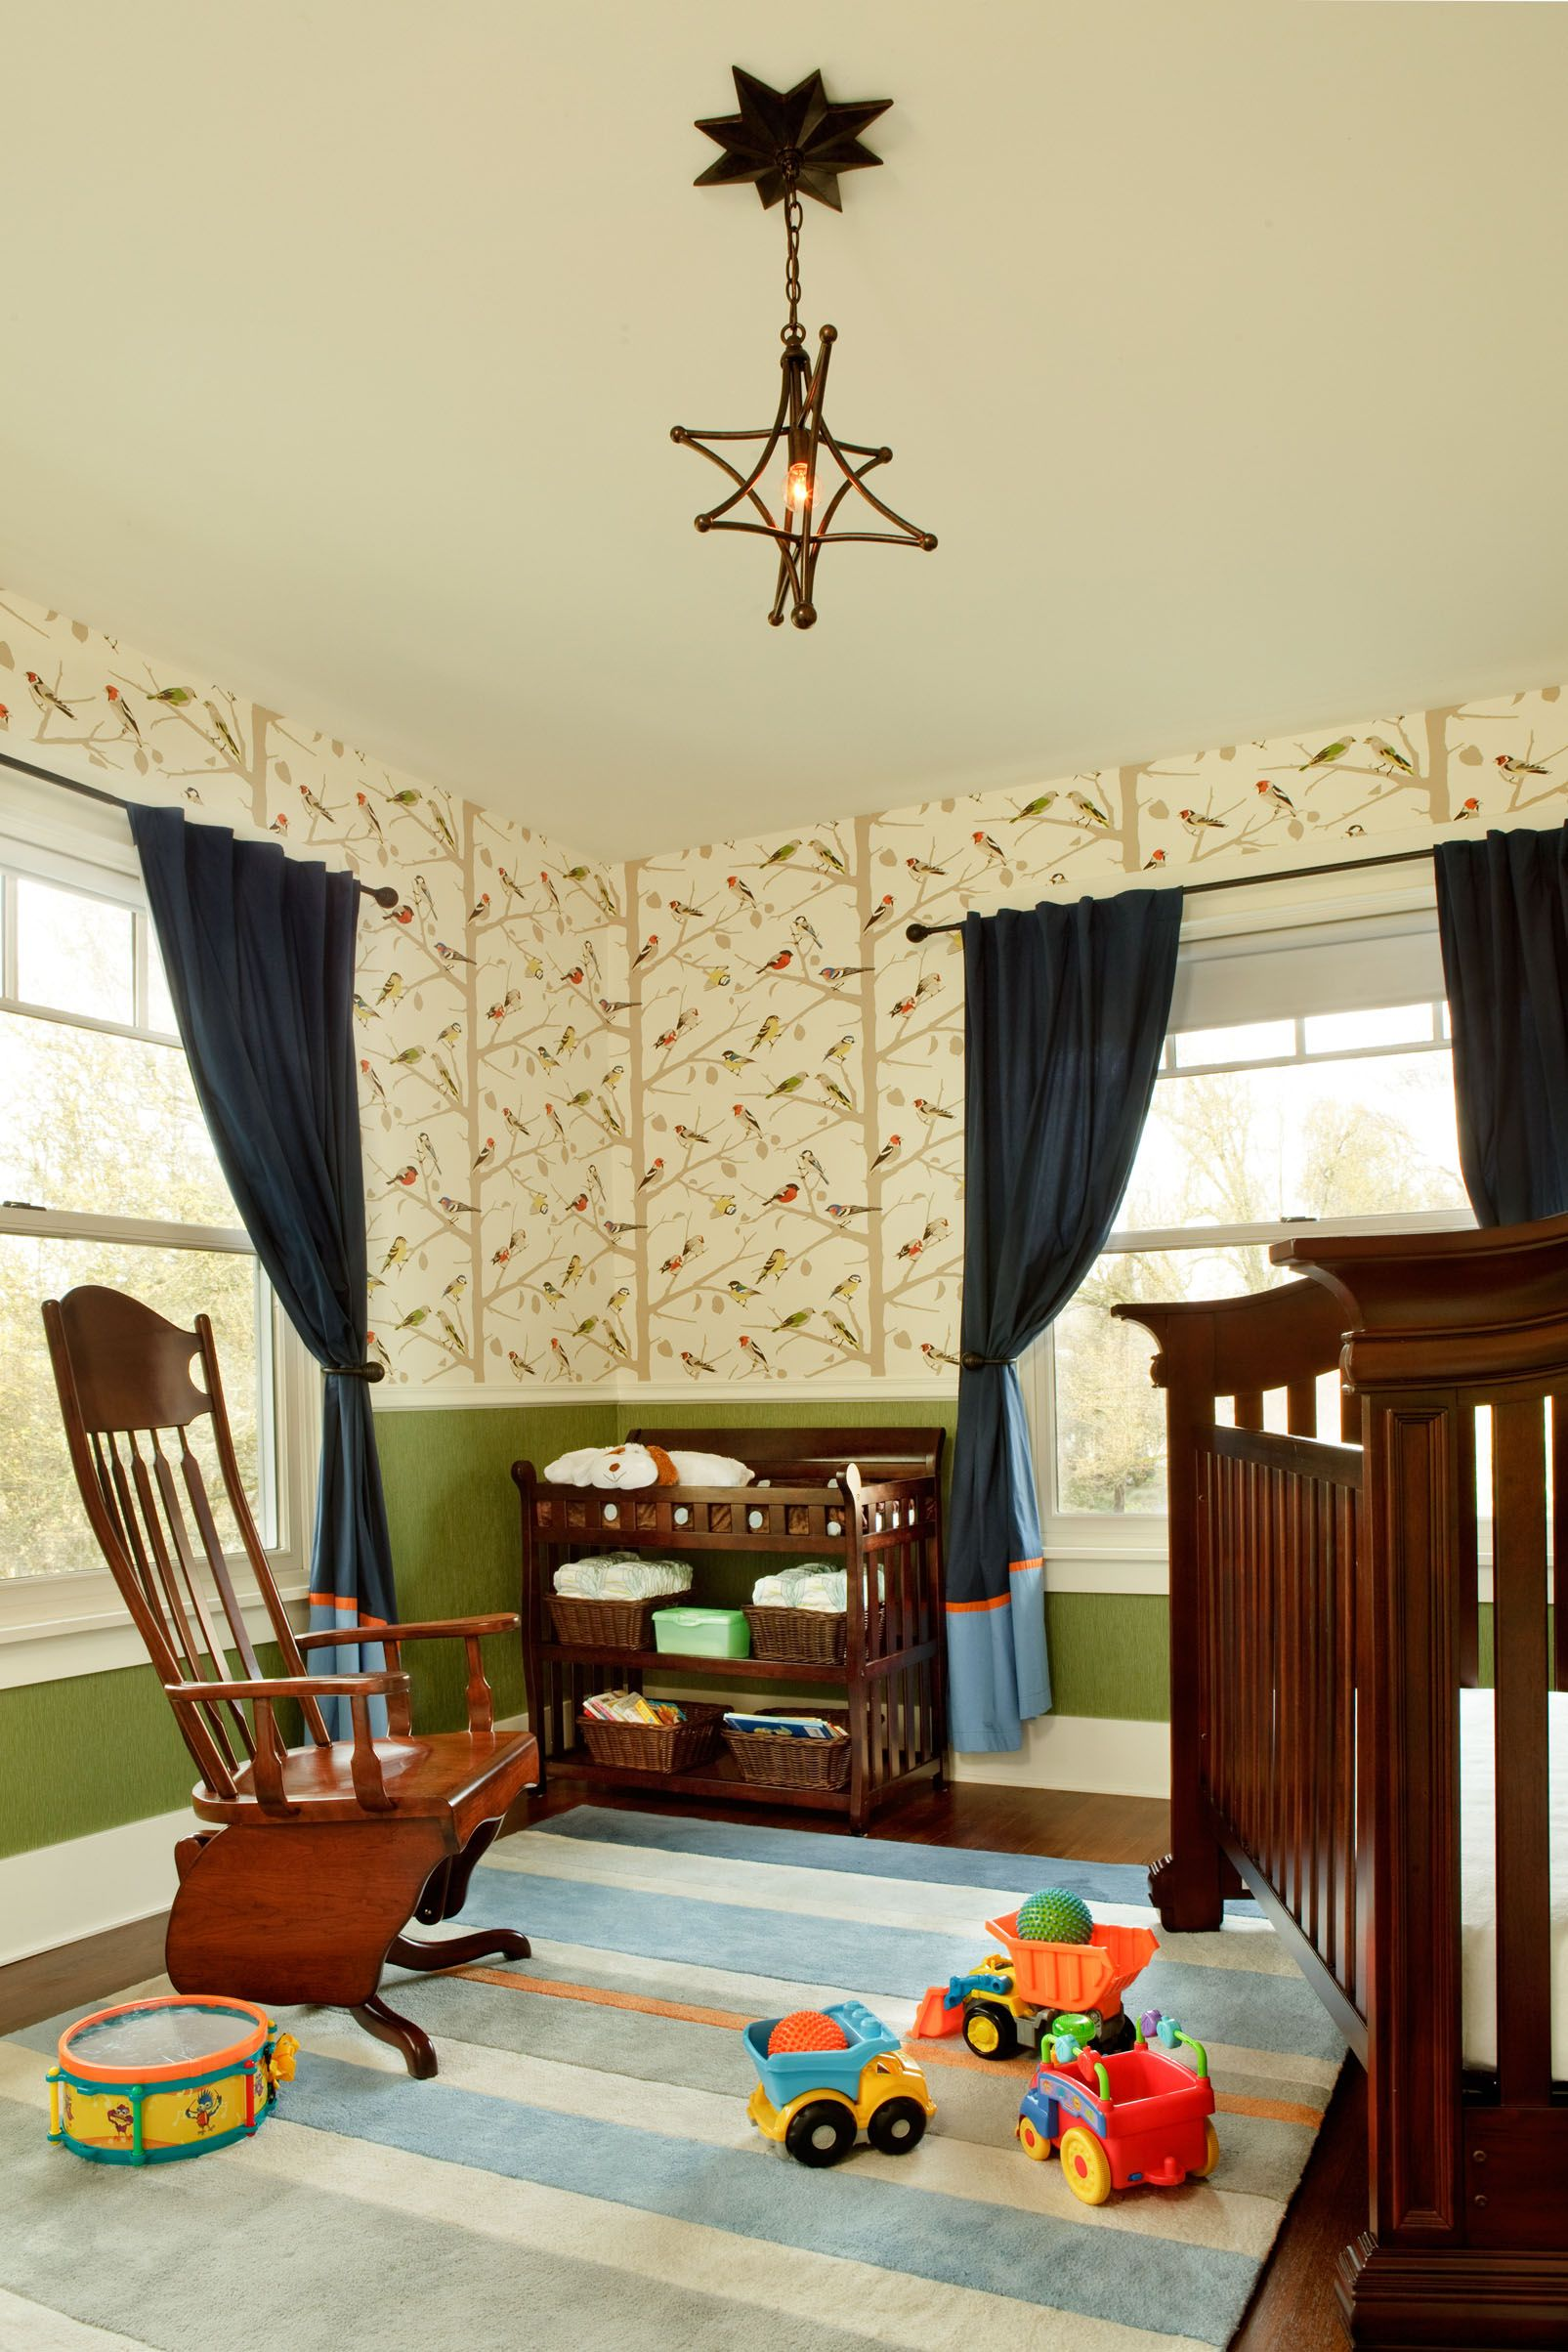 Best Kid Room Designs: Perfect Gift For Expecting Moms! Win A $5,000 Room